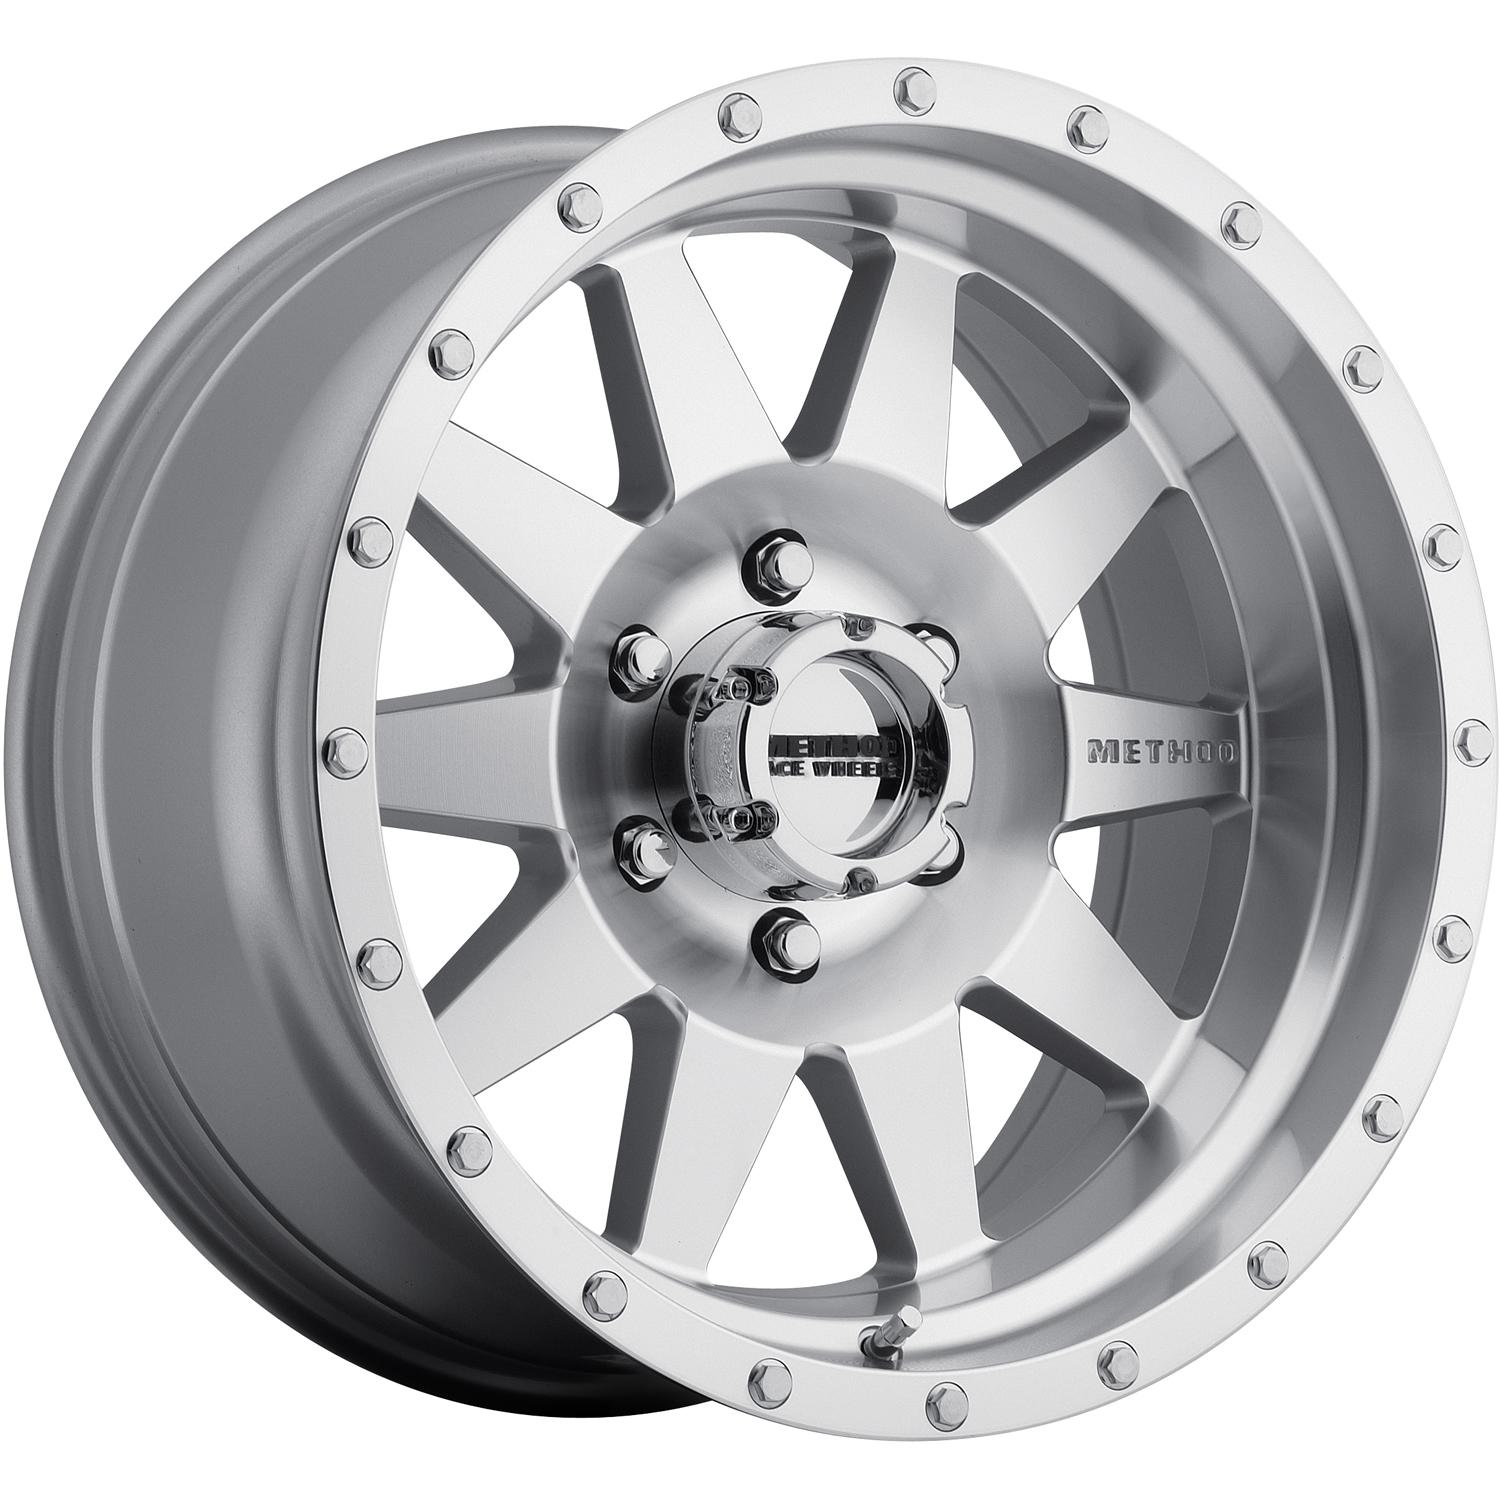 Method The Standard Machined Diamond Cut Silver with Clear Coat and Simulated Bead Lock 18x9 18